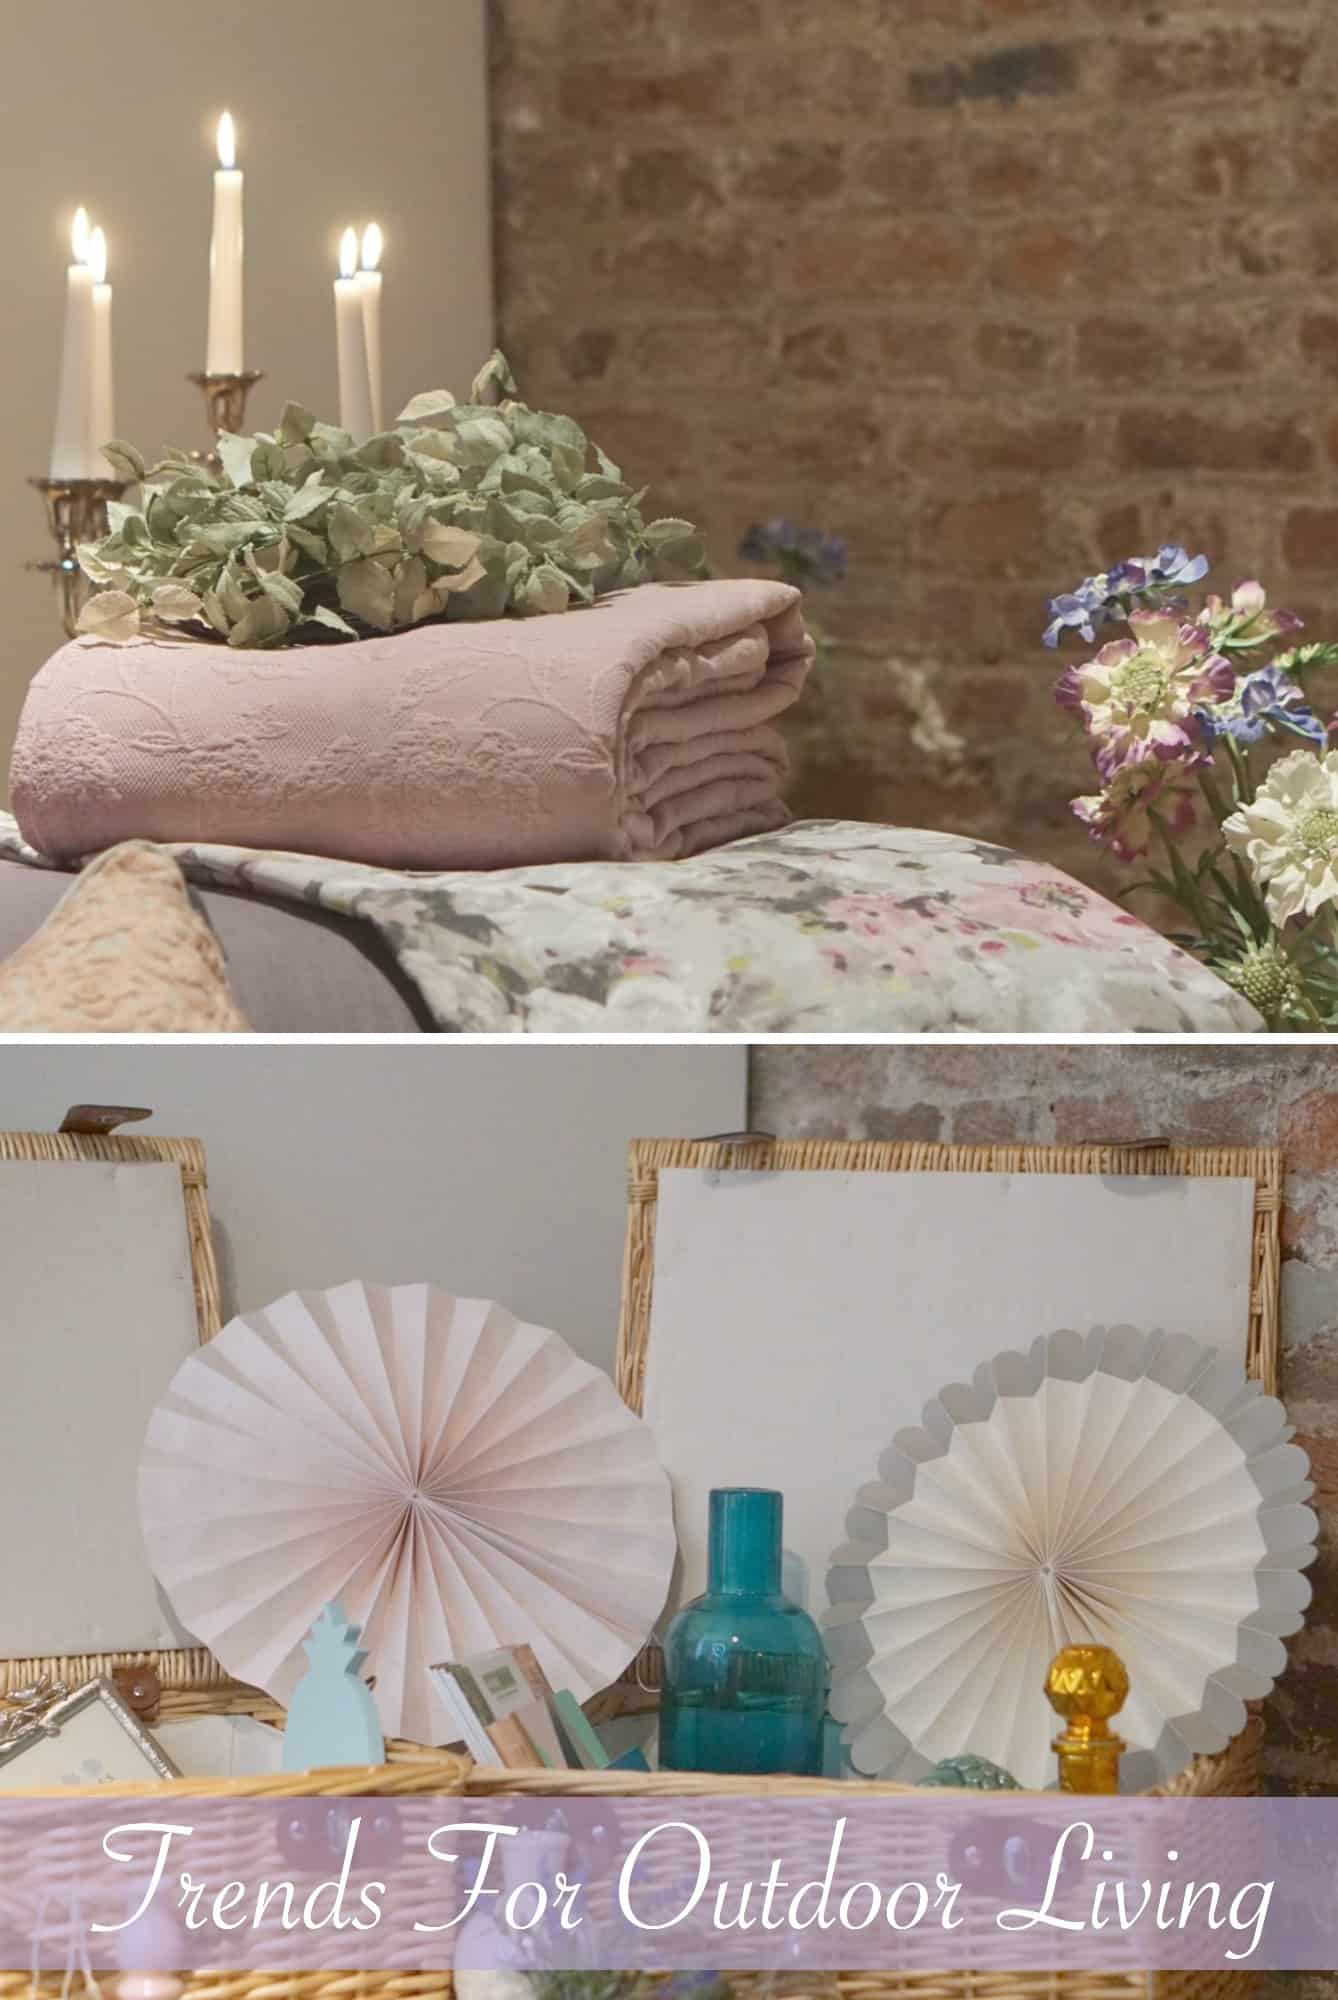 HomeSense Summer Collection and trends and ideas for vintage inspired gardens and yards and carribean bright inspired spaces.